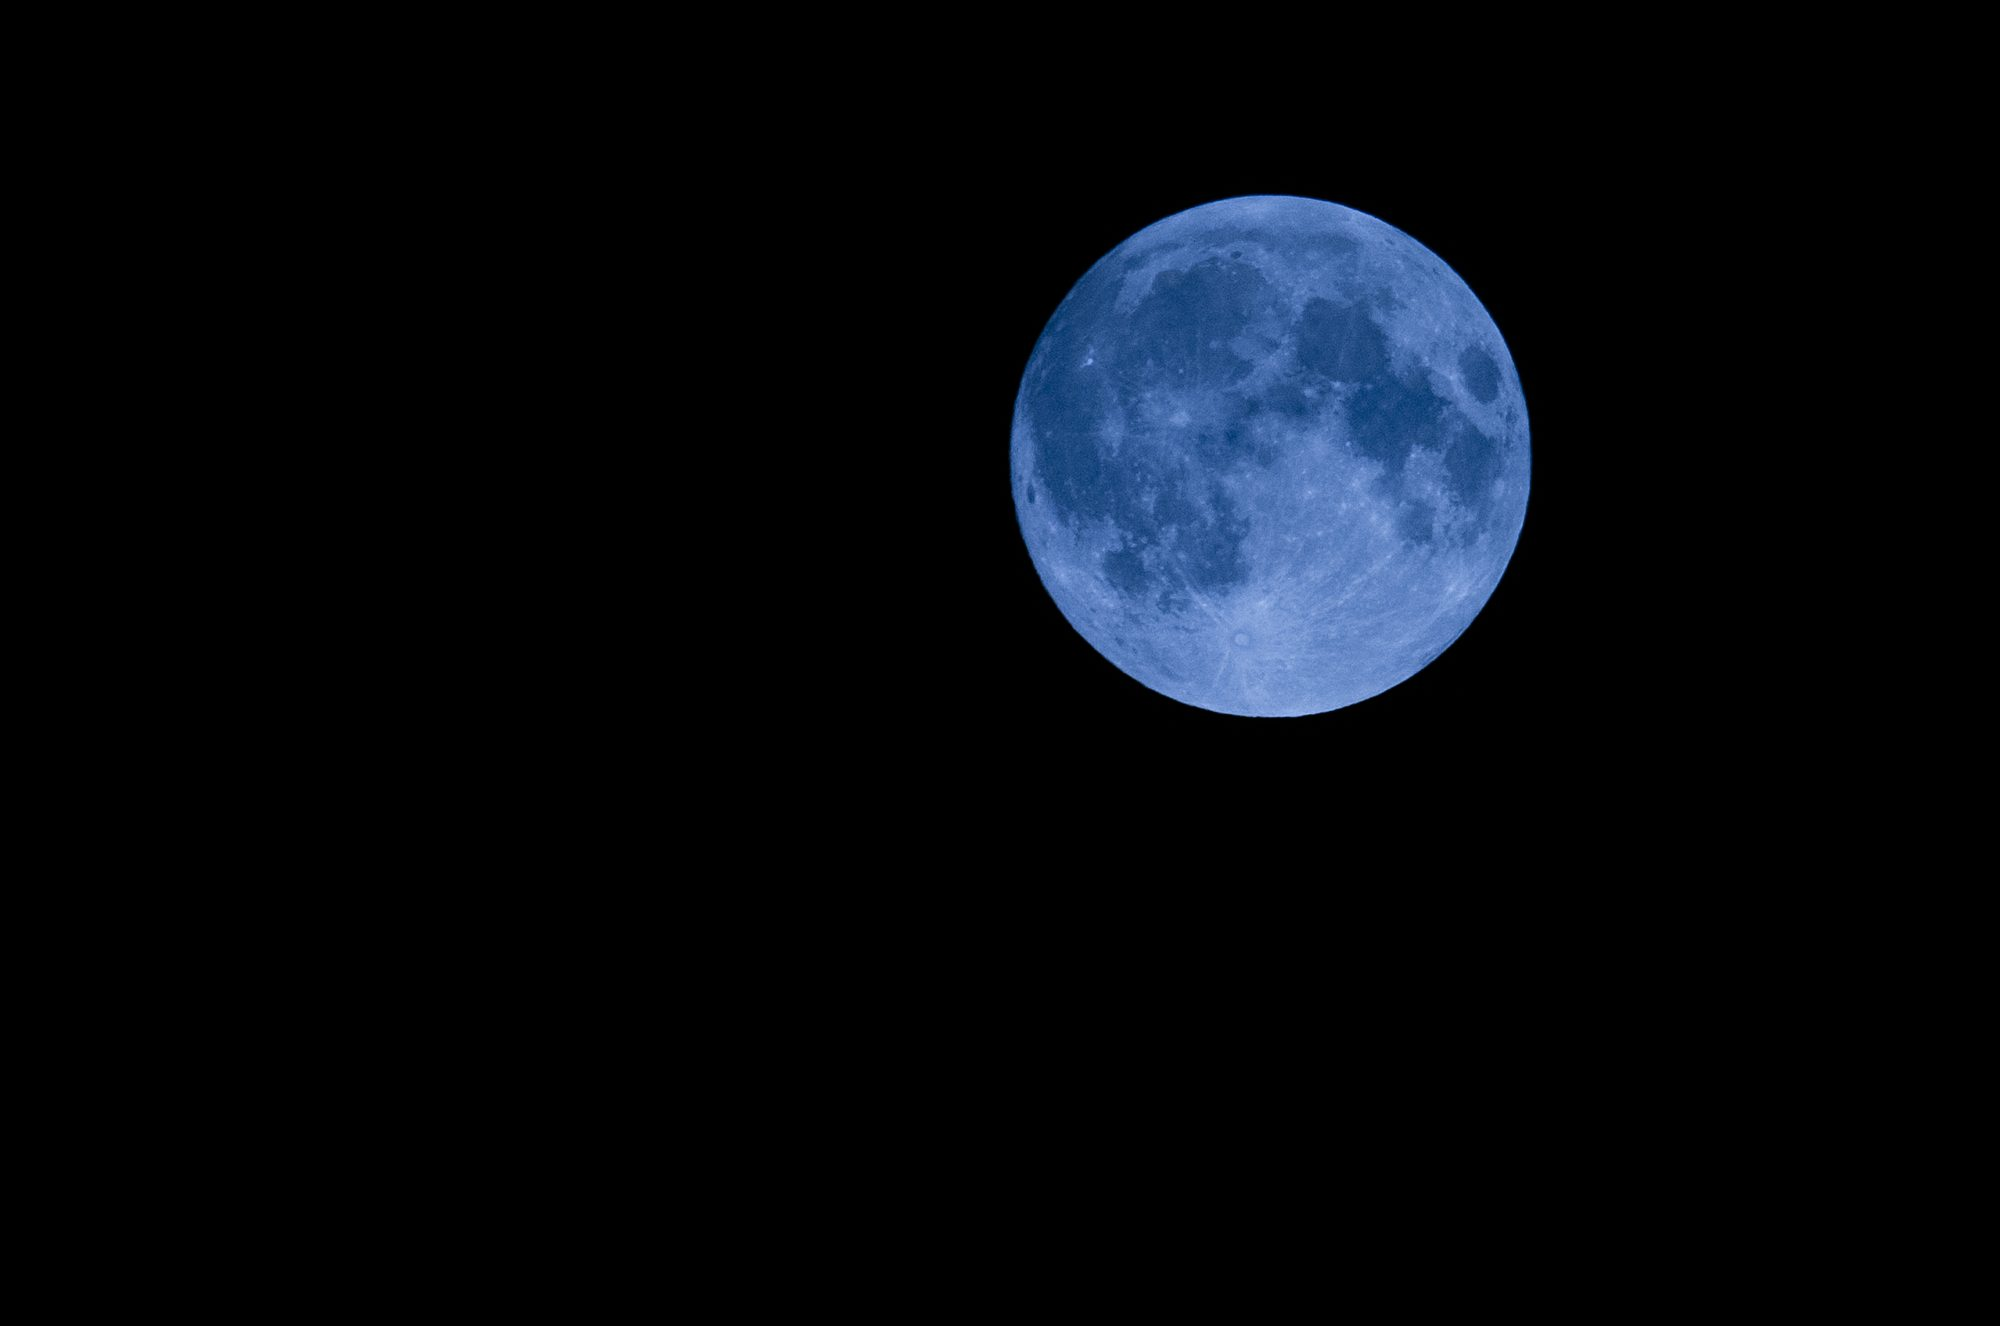 Image of a blue moon